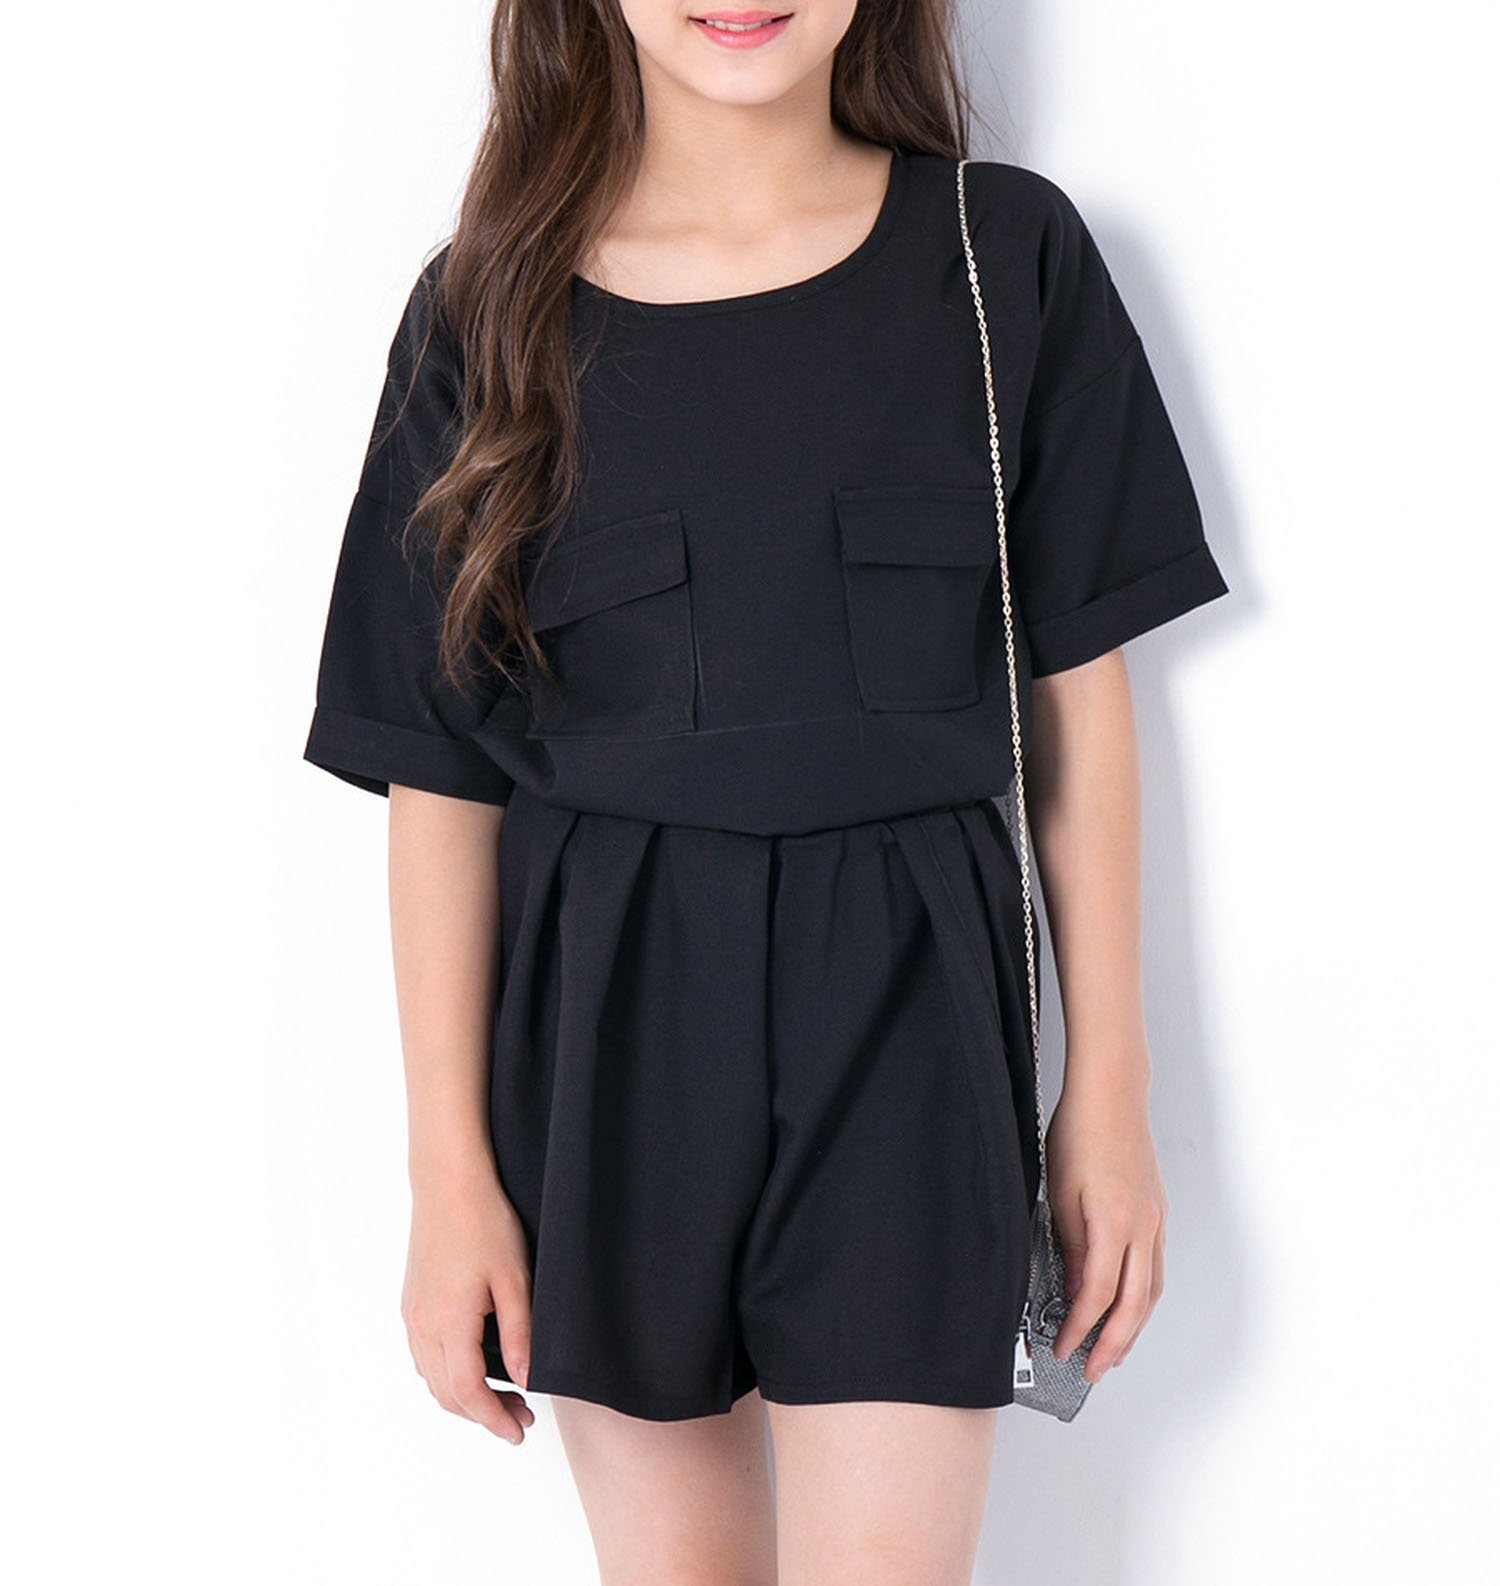 Zcaosma Teenage Girls Clothing Sets Two-Piece Tops Shorts Girls Suits,Black,12